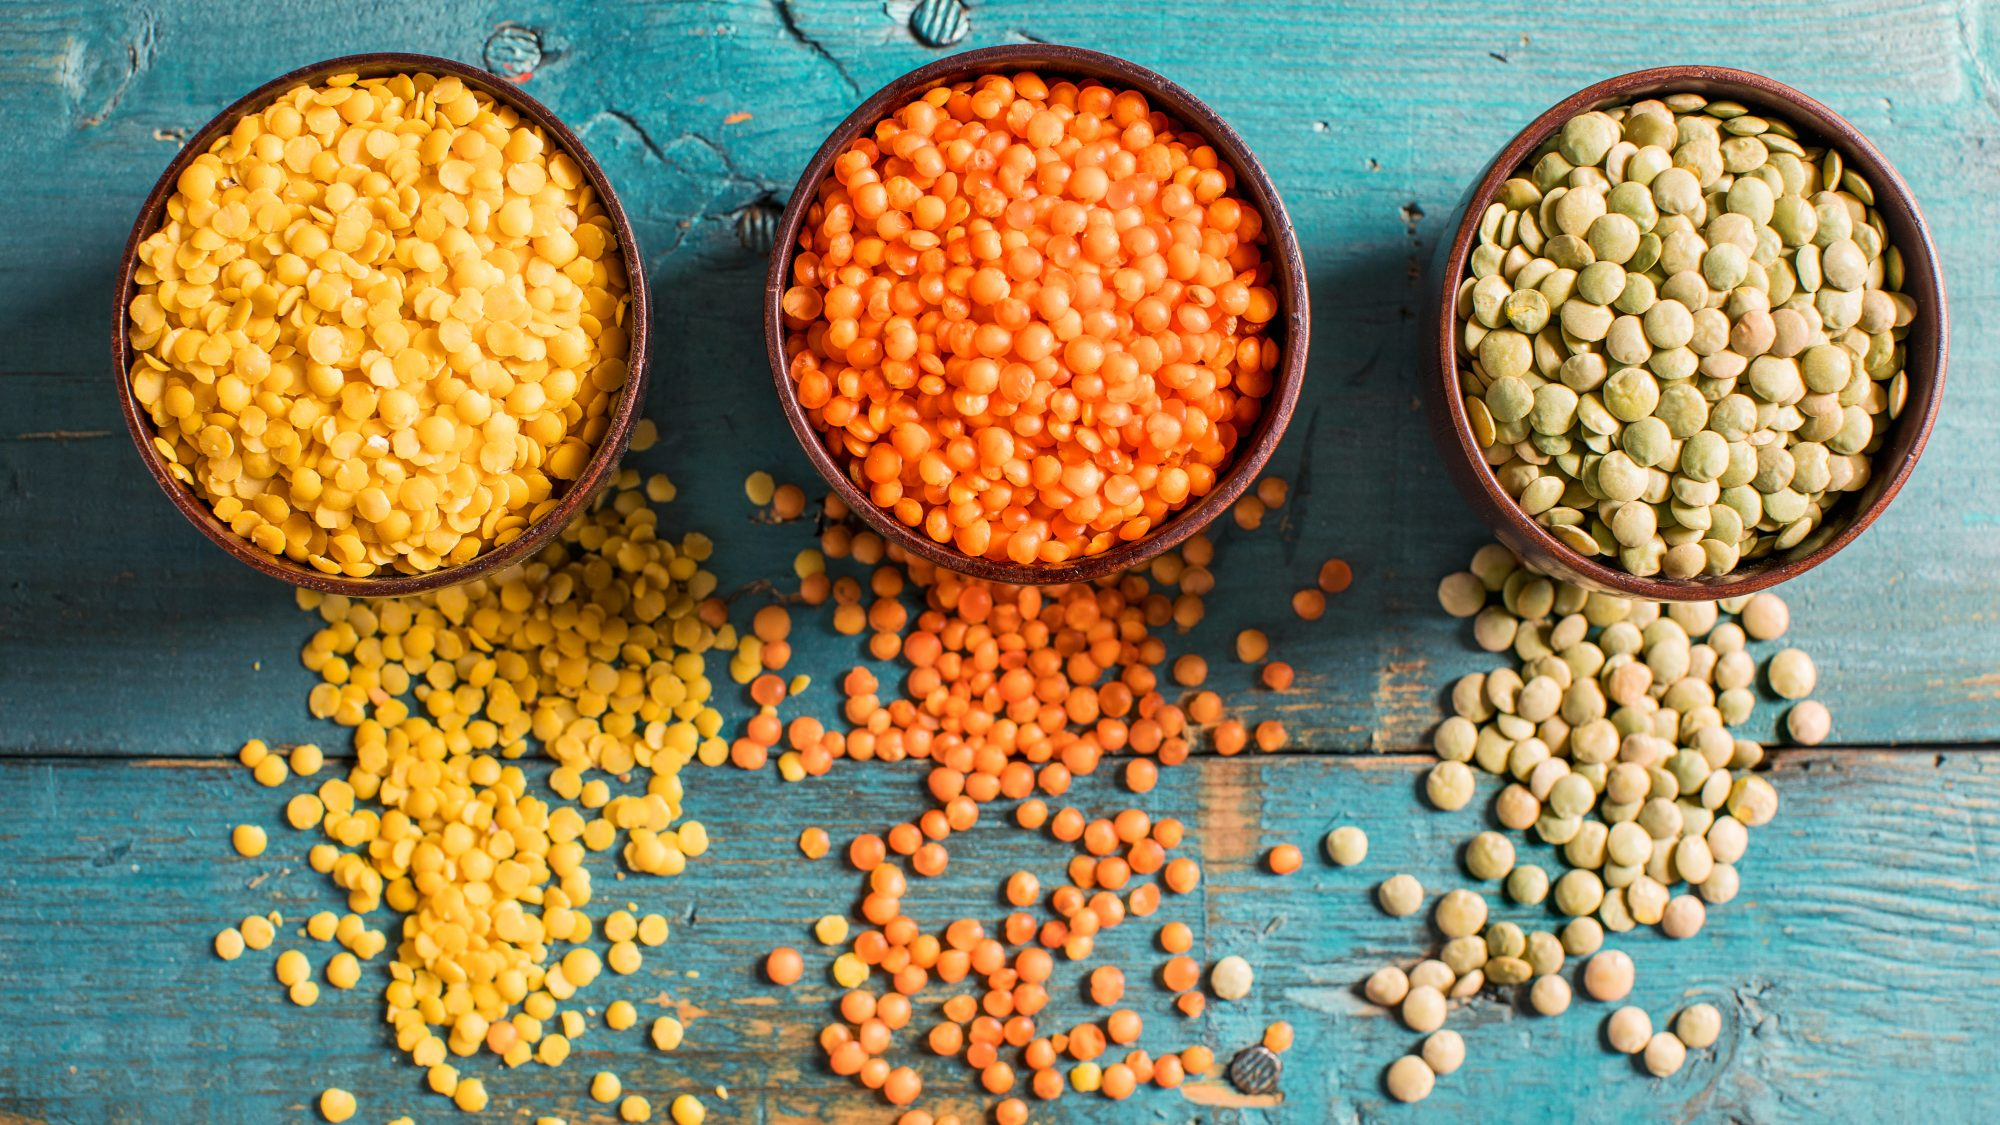 Benefits of lentils - health benefits of eating lentils (different colored lentils)